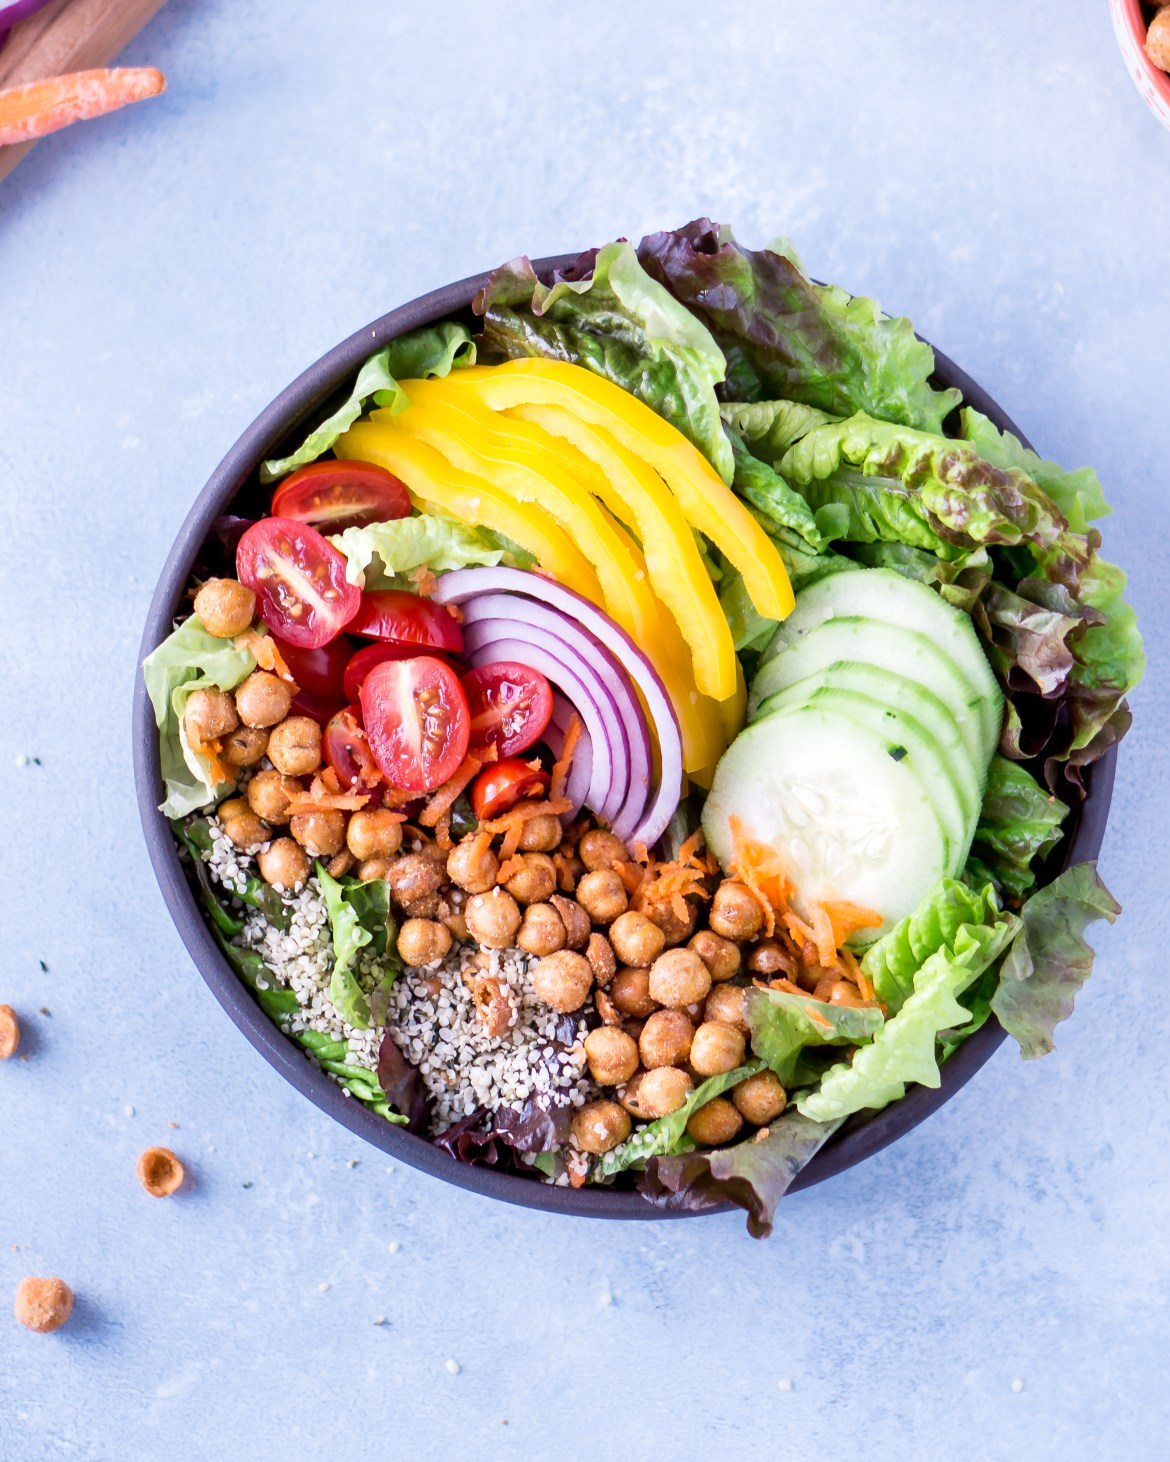 Every Day Colorful Salad with Homemade Balsamic Vinaigrette